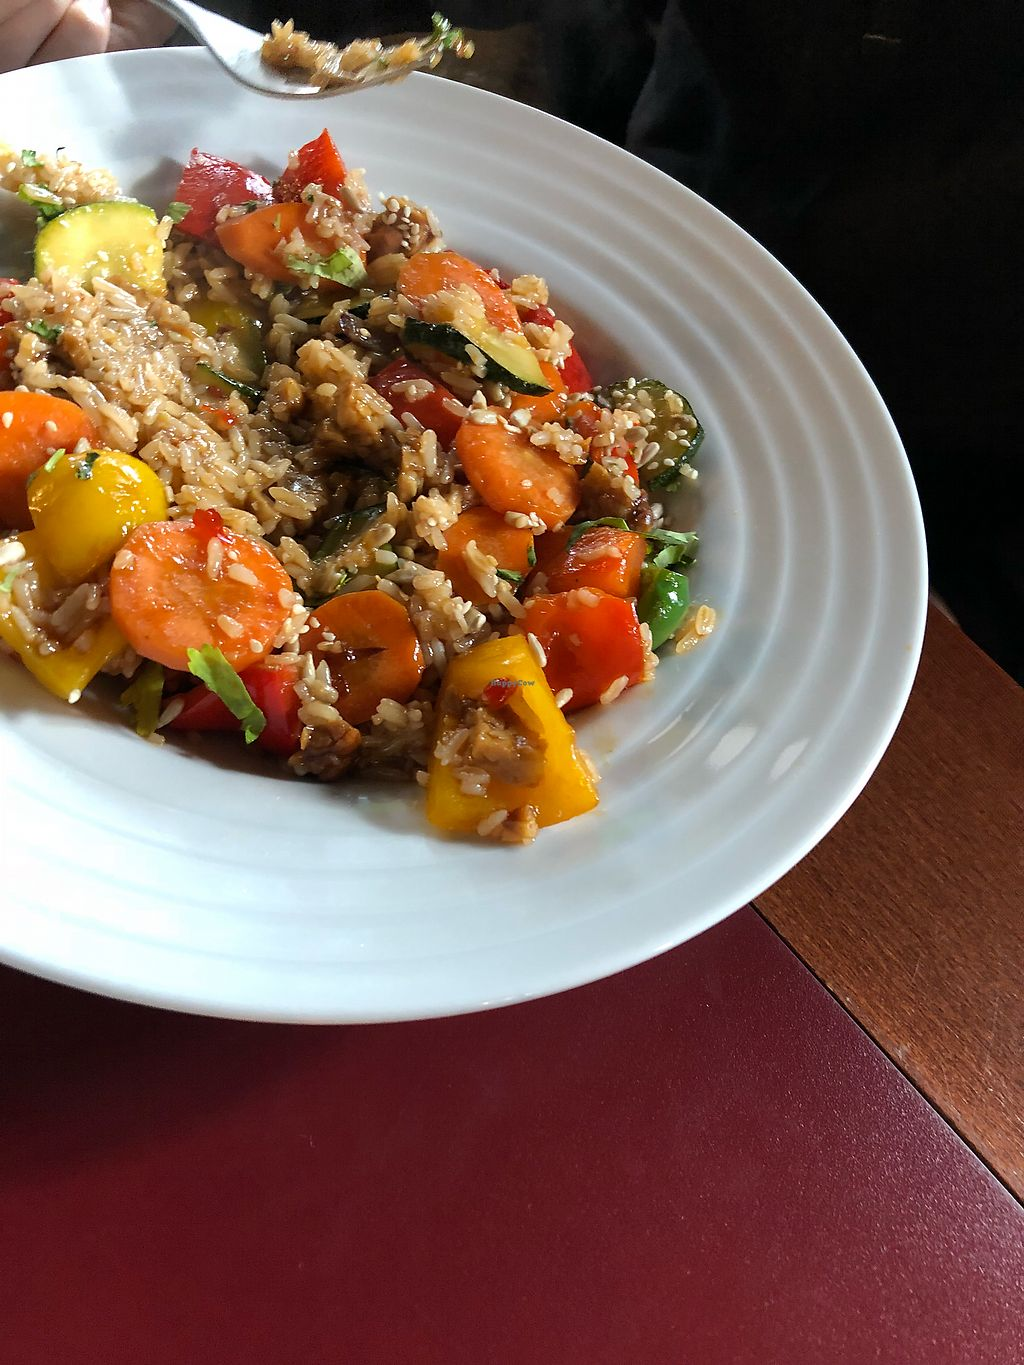 "Photo of Vegan's Prague  by <a href=""/members/profile/OriKalisher"">OriKalisher</a> <br/>Fried rice <br/> April 4, 2018  - <a href='/contact/abuse/image/71531/380833'>Report</a>"